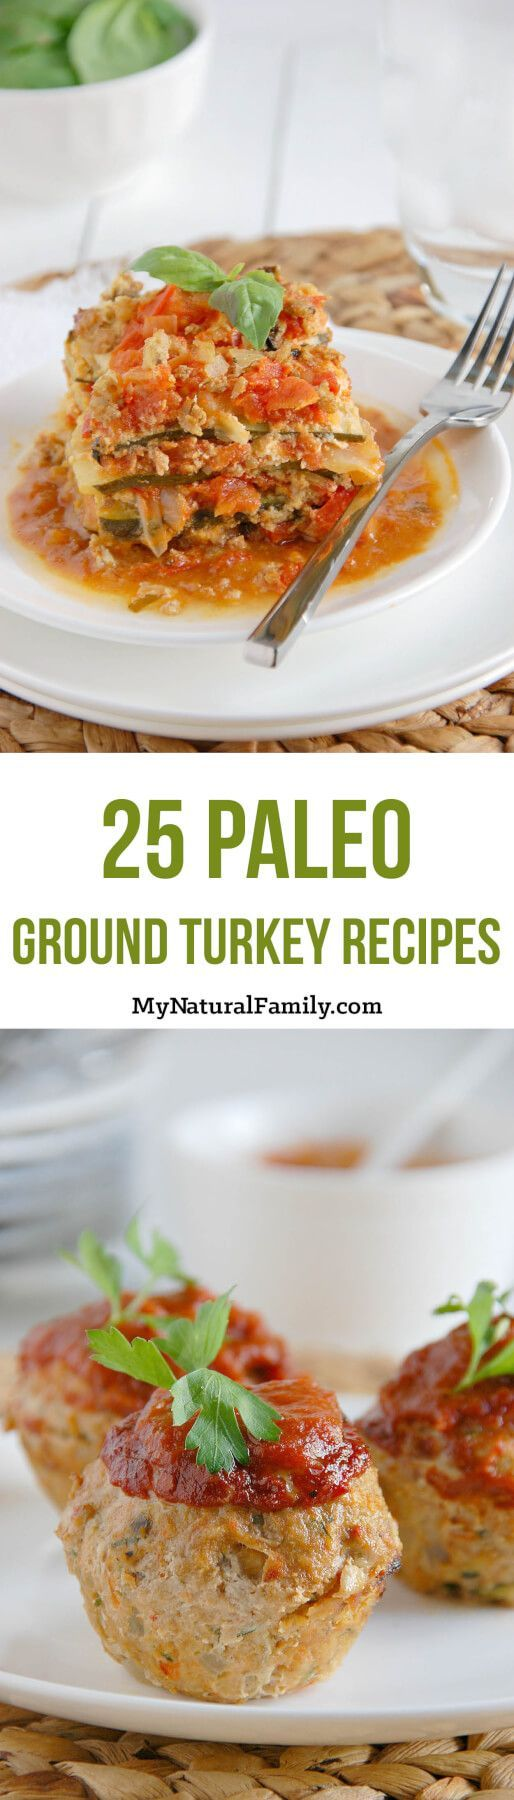 25 Paleo Ground Turkey Recipes. Ground turkey is a lean protein that can be used in place of chicken or beef. Save this pin to refer to next time you need a healthy recipe and want to use ground turkey!